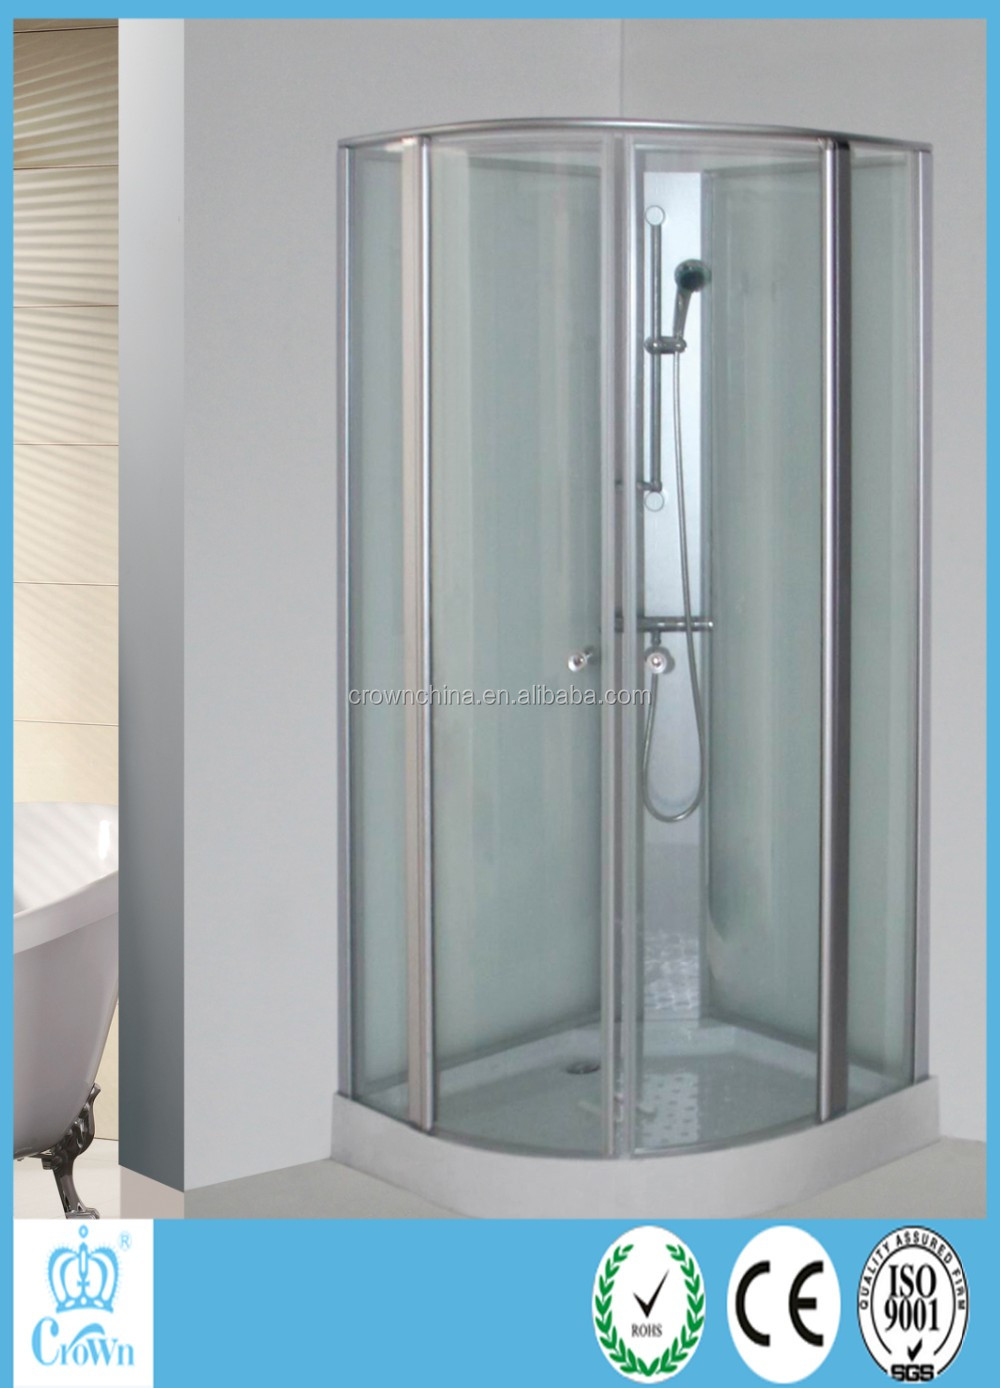 Small Bathroom Corner Shower, Small Bathroom Corner Shower Suppliers ...